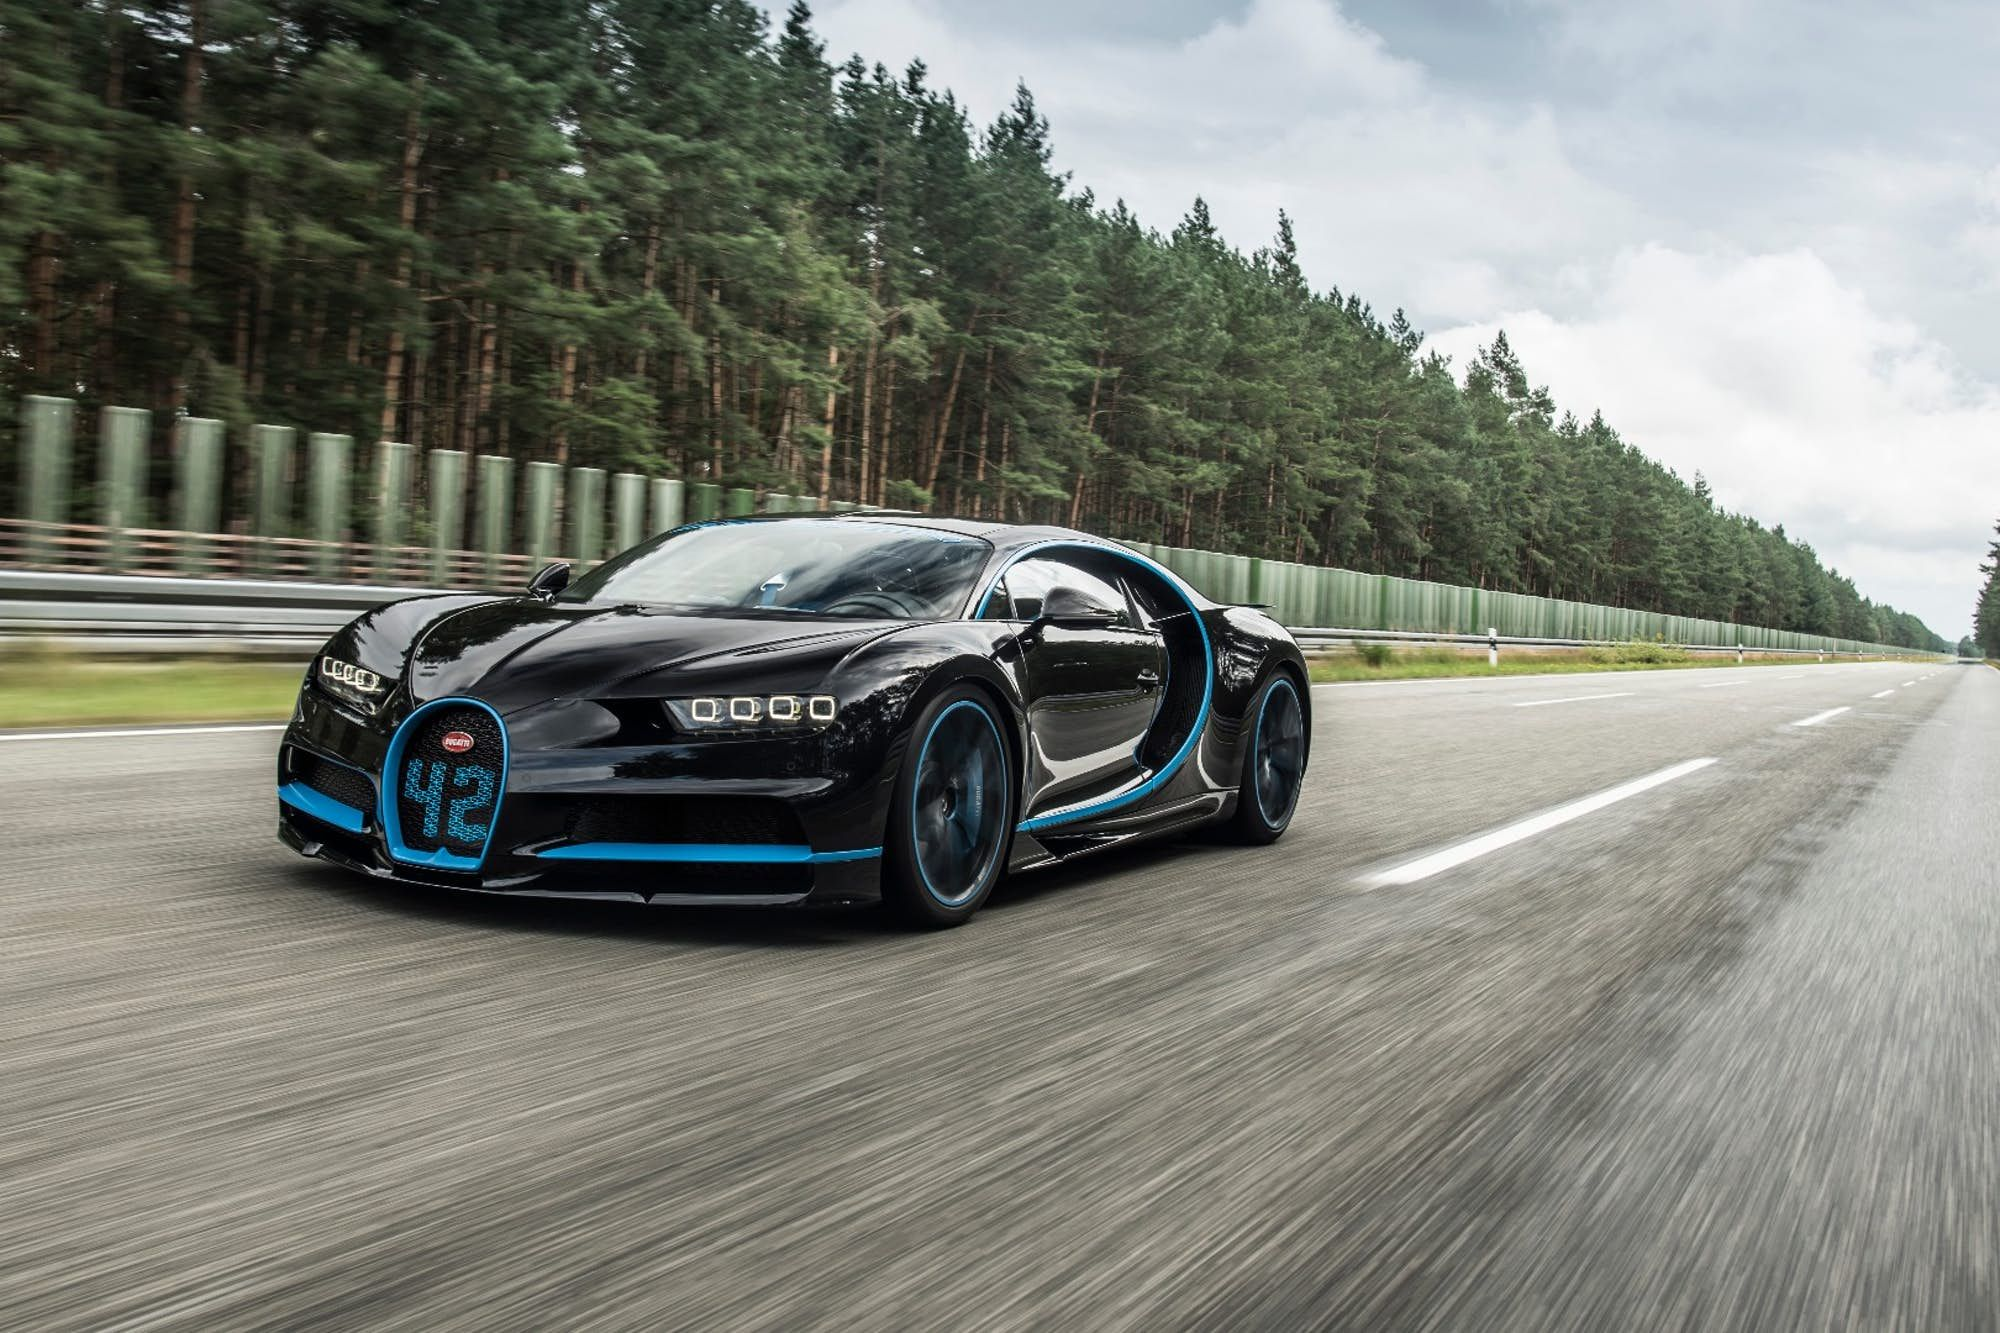 The Chiron hit 400 km/h in just over 30 seconds   Bugatti ...